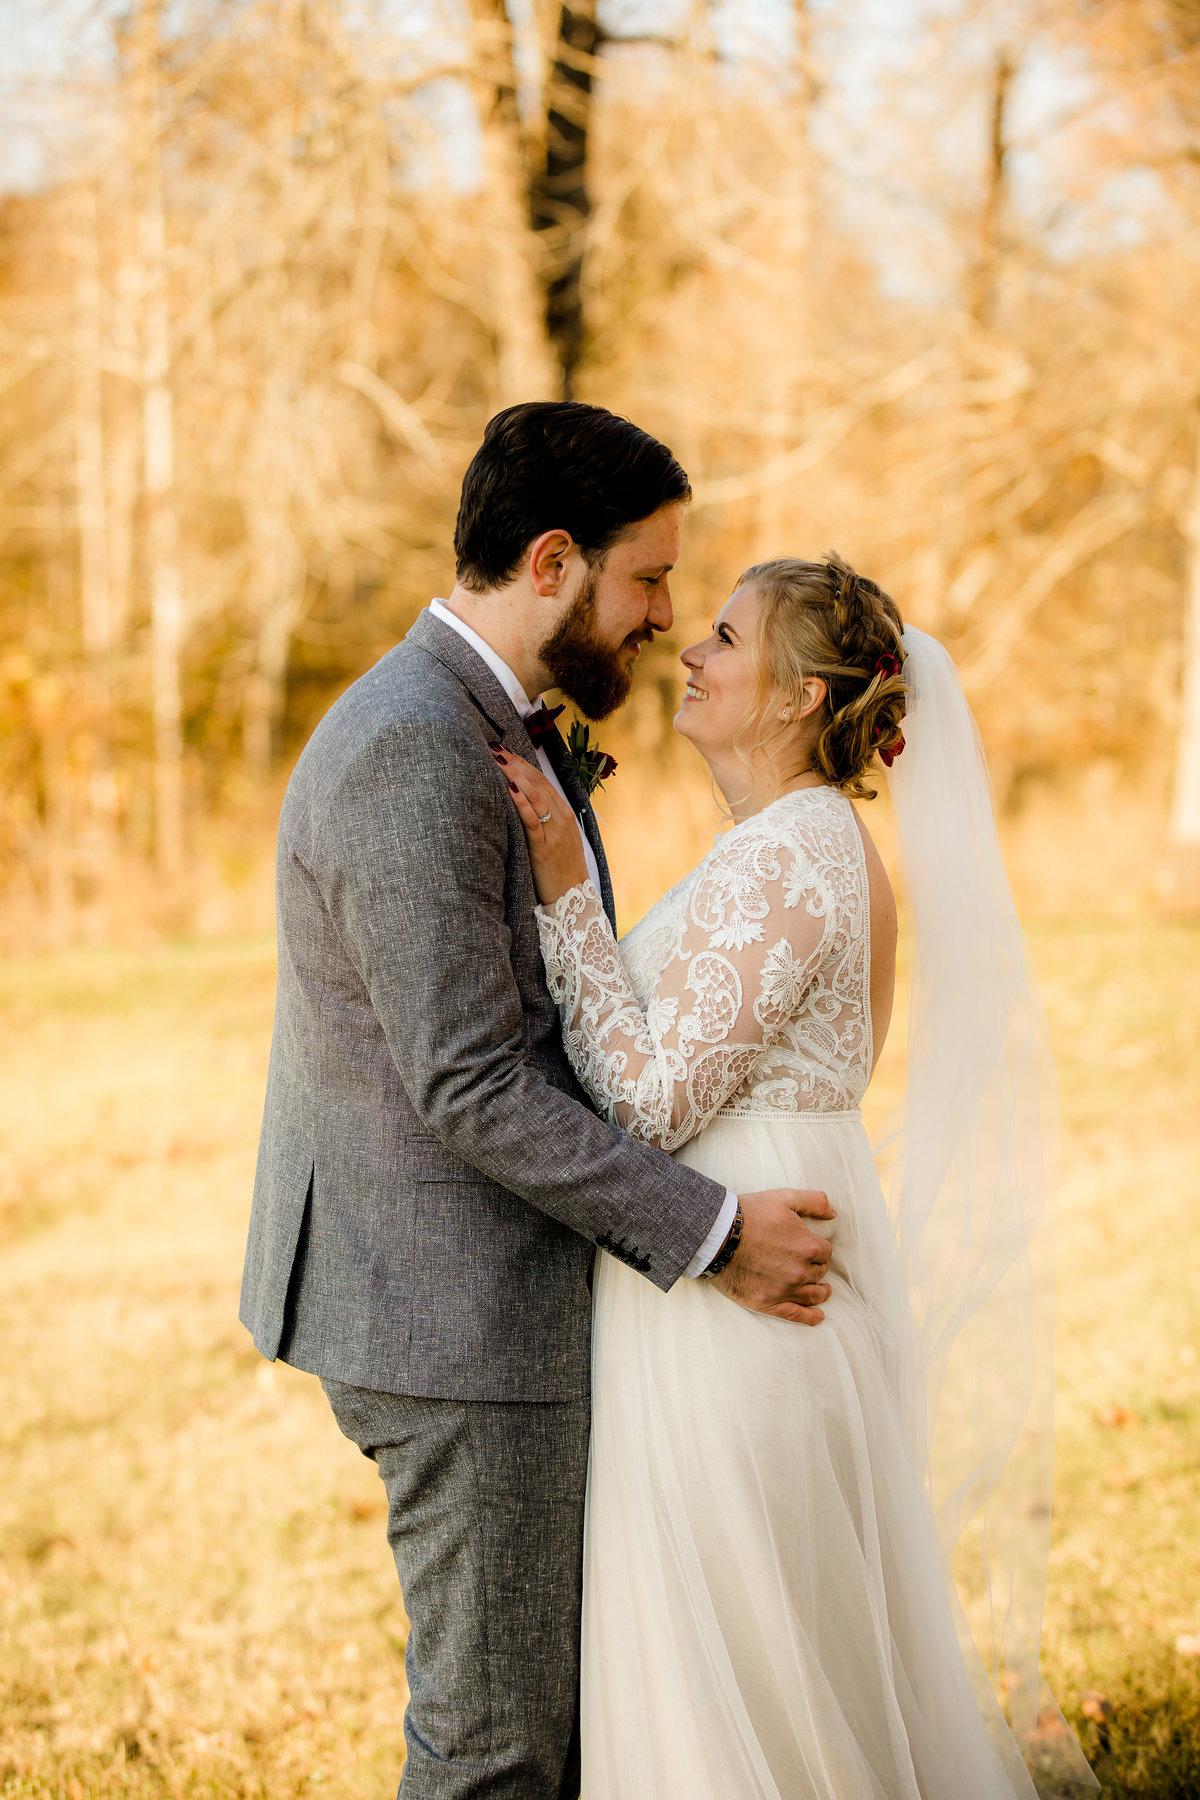 Cactus Creek Barn - Dickson Wedding - Dickson TN - Outdoor Weddings - Outdoor Wedding - Nashville Wedding - Nashville Weddings - Nashville Wedding Photographer - Nashville Wedding Photographers115